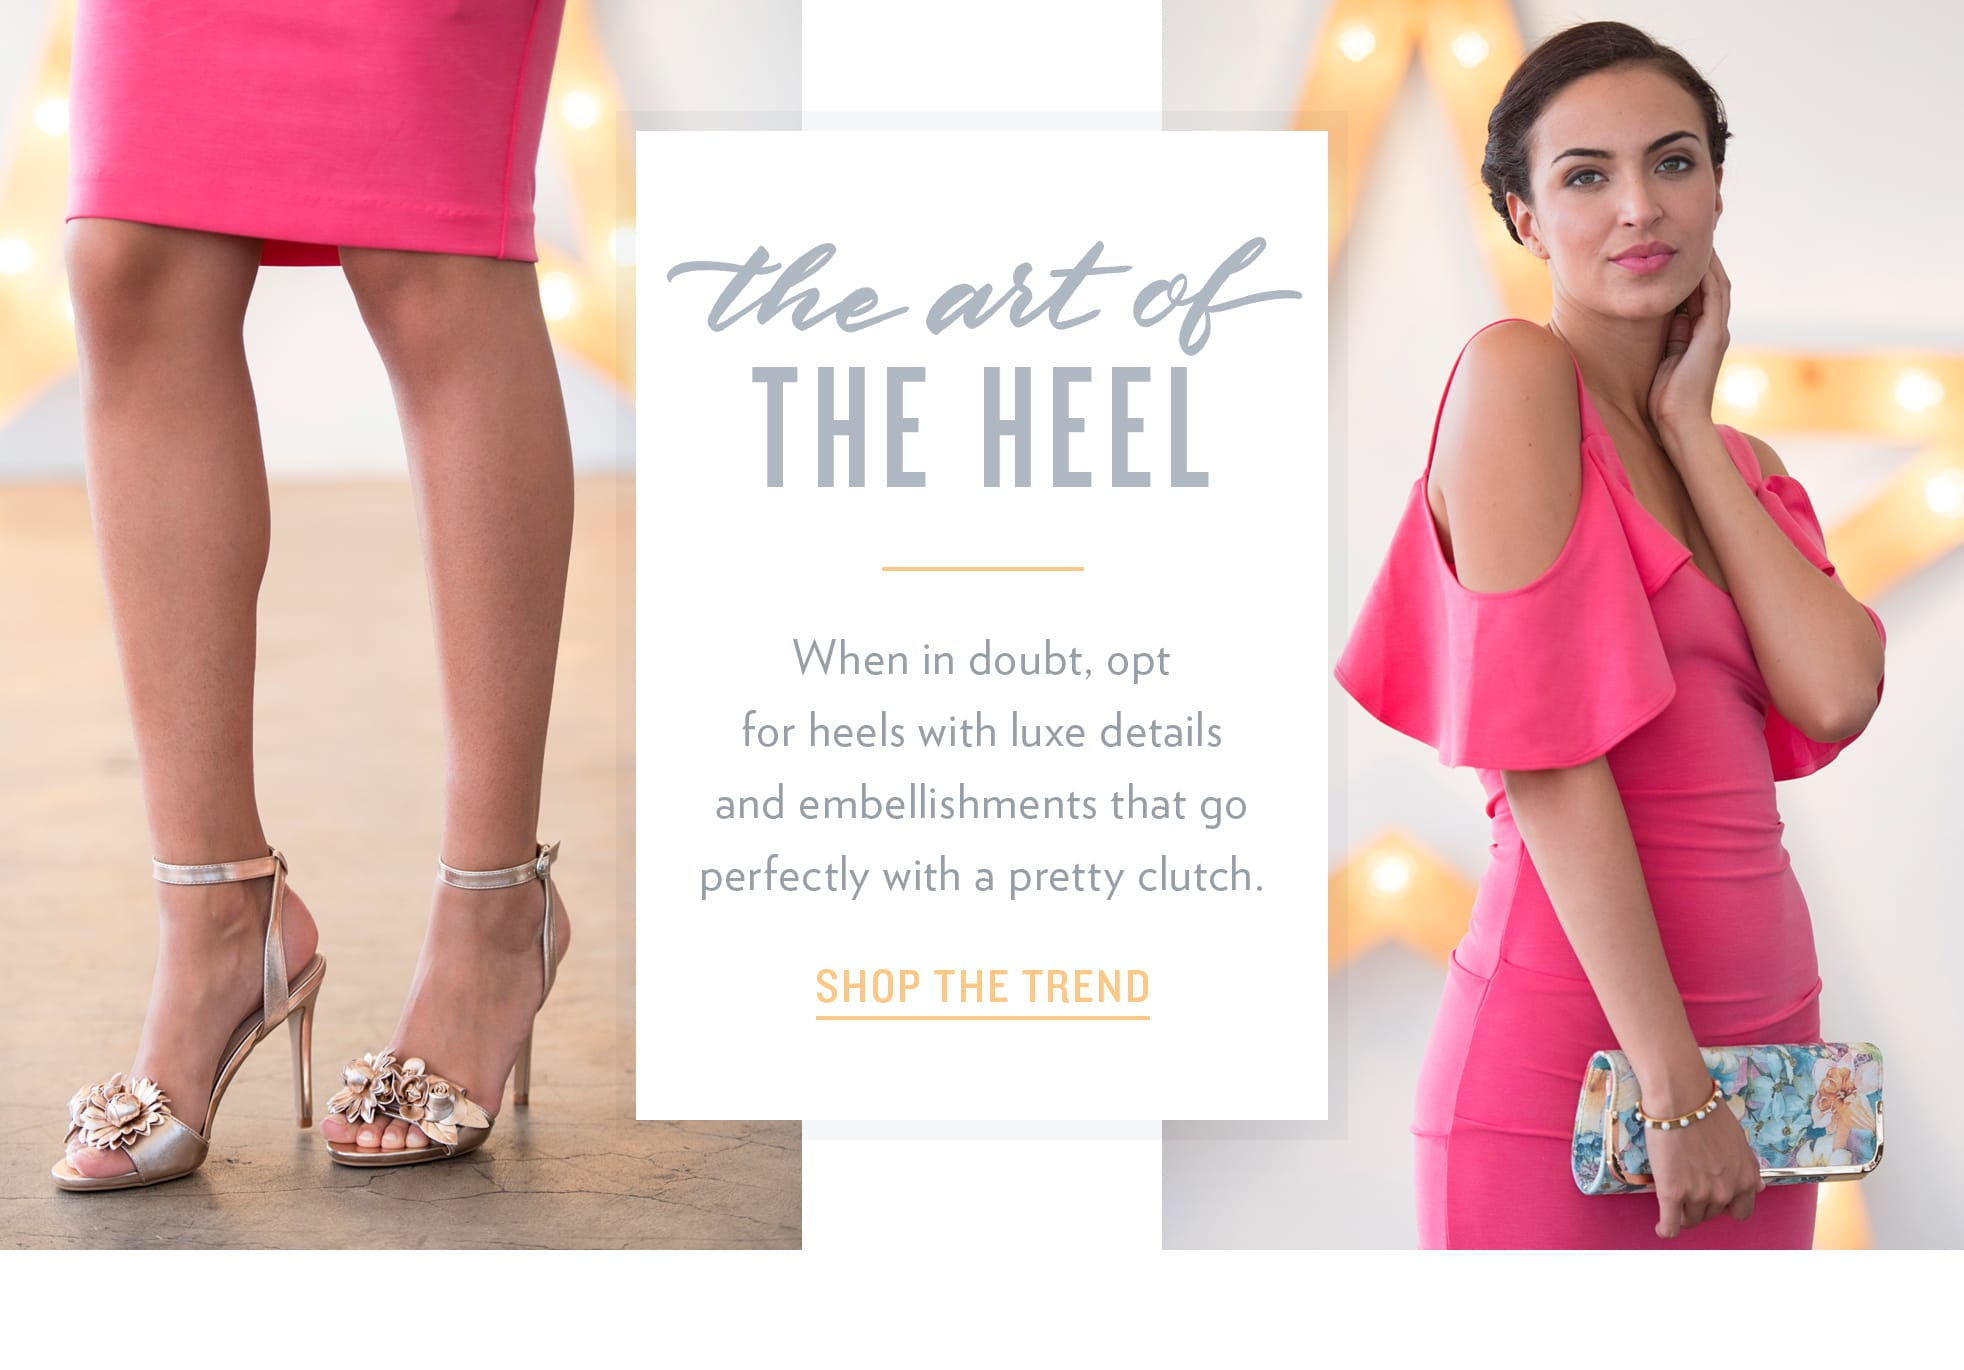 Fashion Trend: The Art of the Heel